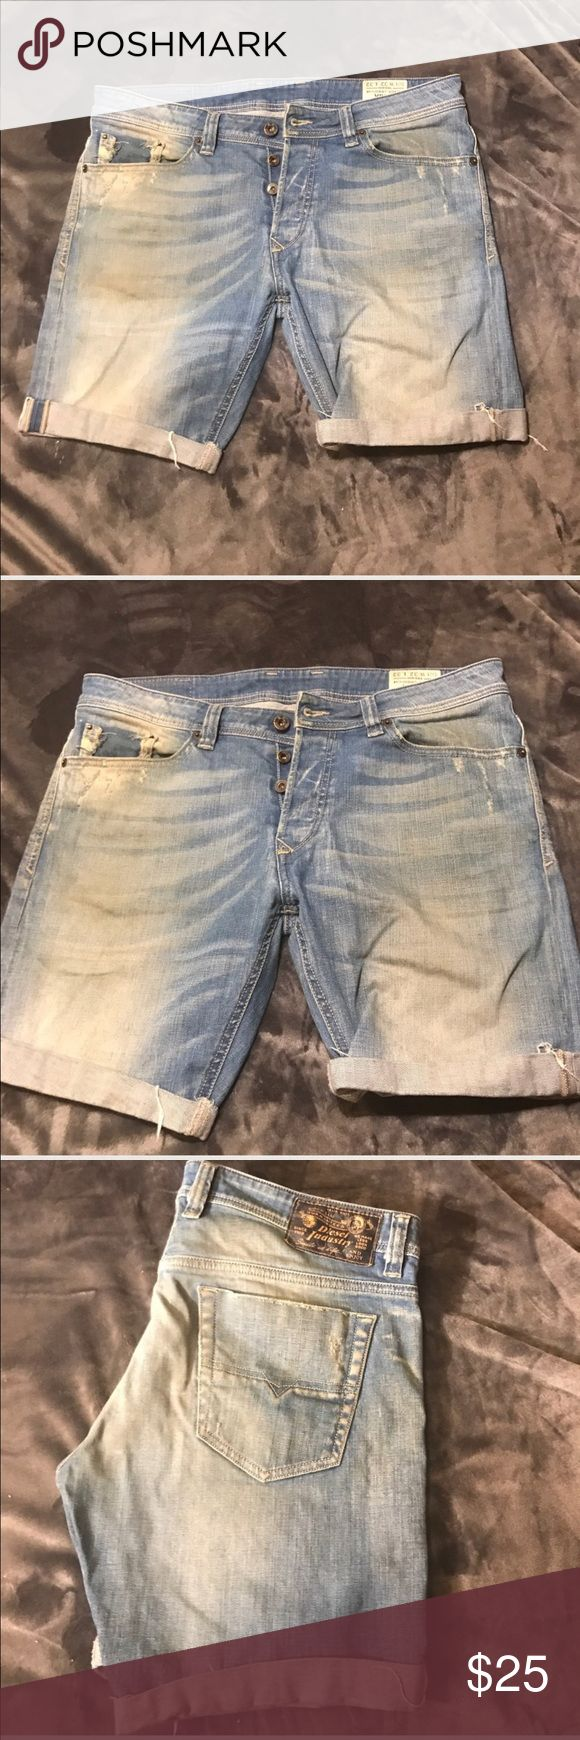 Diesel Viker jeans denim shorts Vintage. W32  but they don't stretch so would better fit 30 show signs of wear. Not as visible in hands as the light show on pictures. Specially on front on wrinkles. Great if you want to DIY distress shorts. Bolt fly. Diesel Shorts Jean Shorts